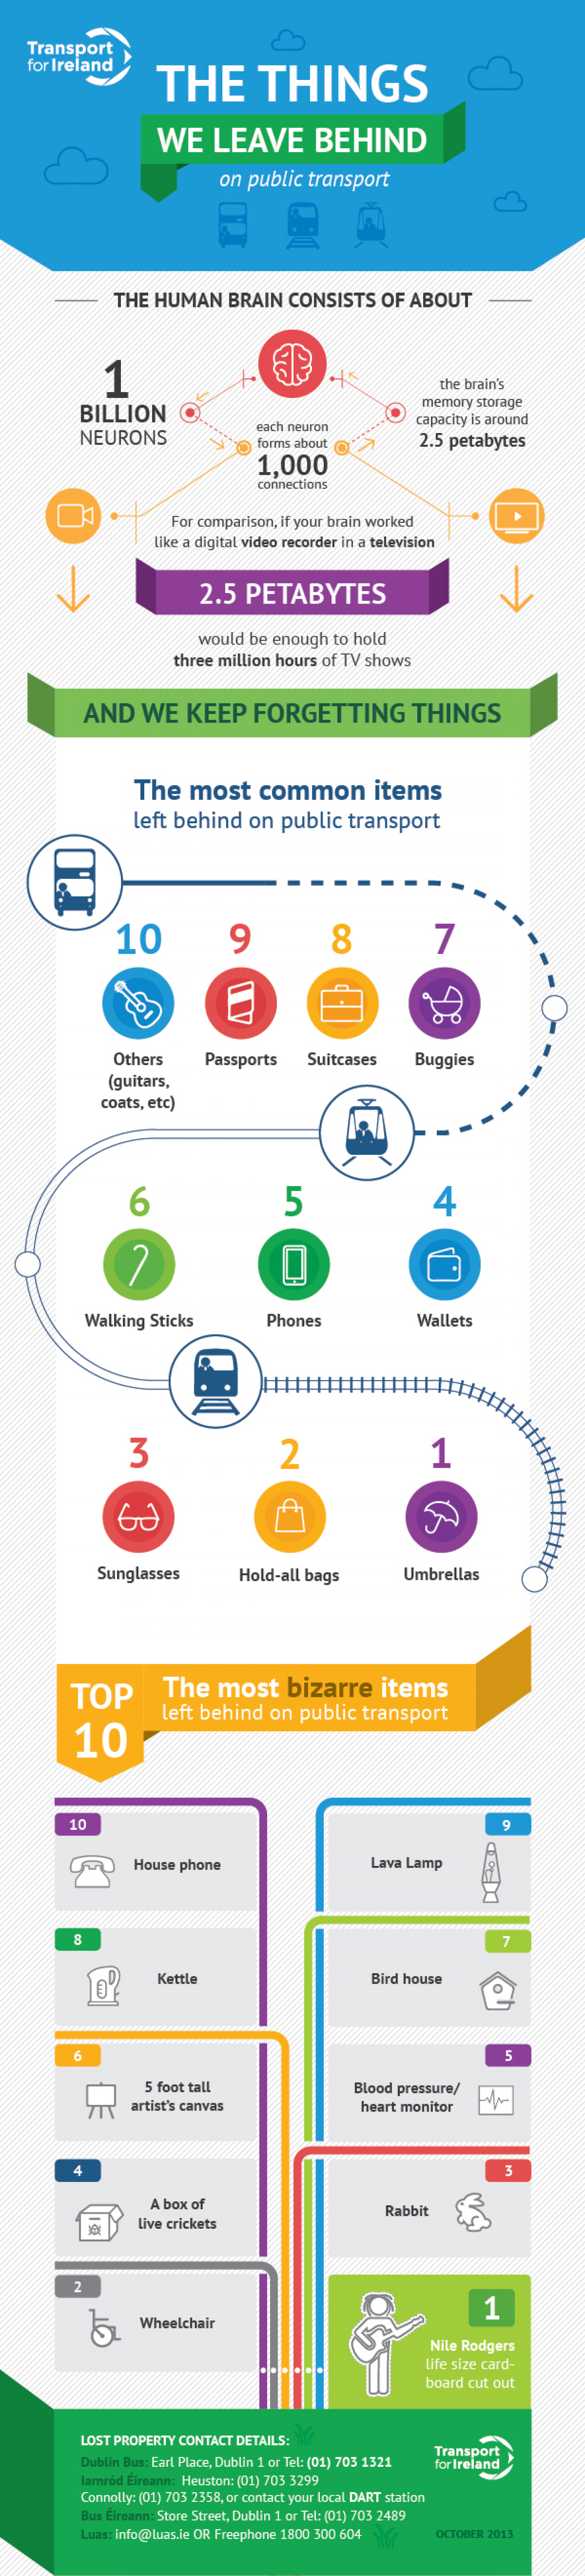 The things we leave behind on public transport Infographic